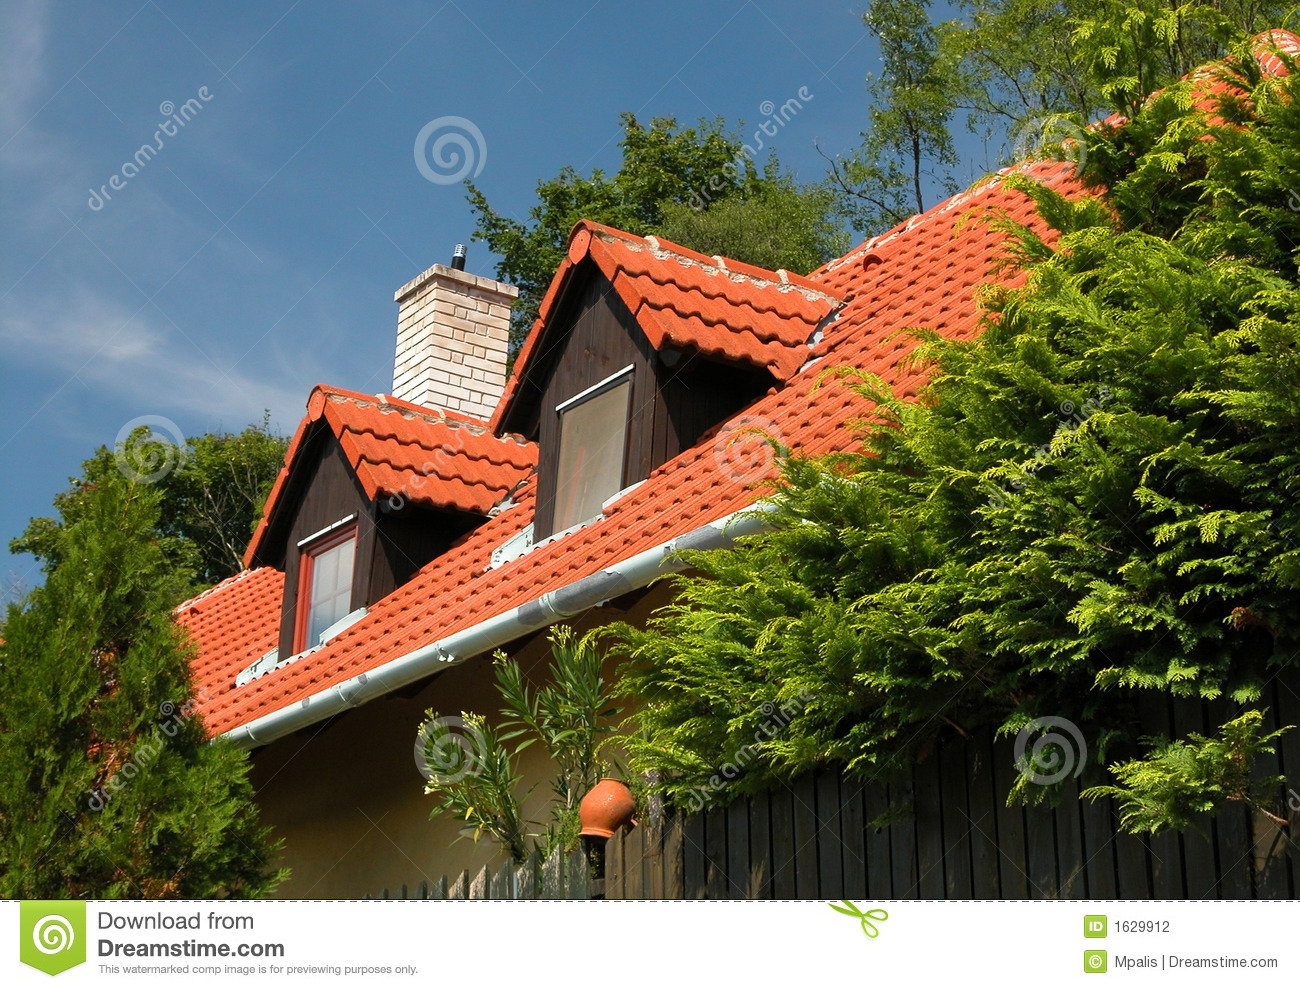 Attic Rooms Stock Photography - Image: 1629912